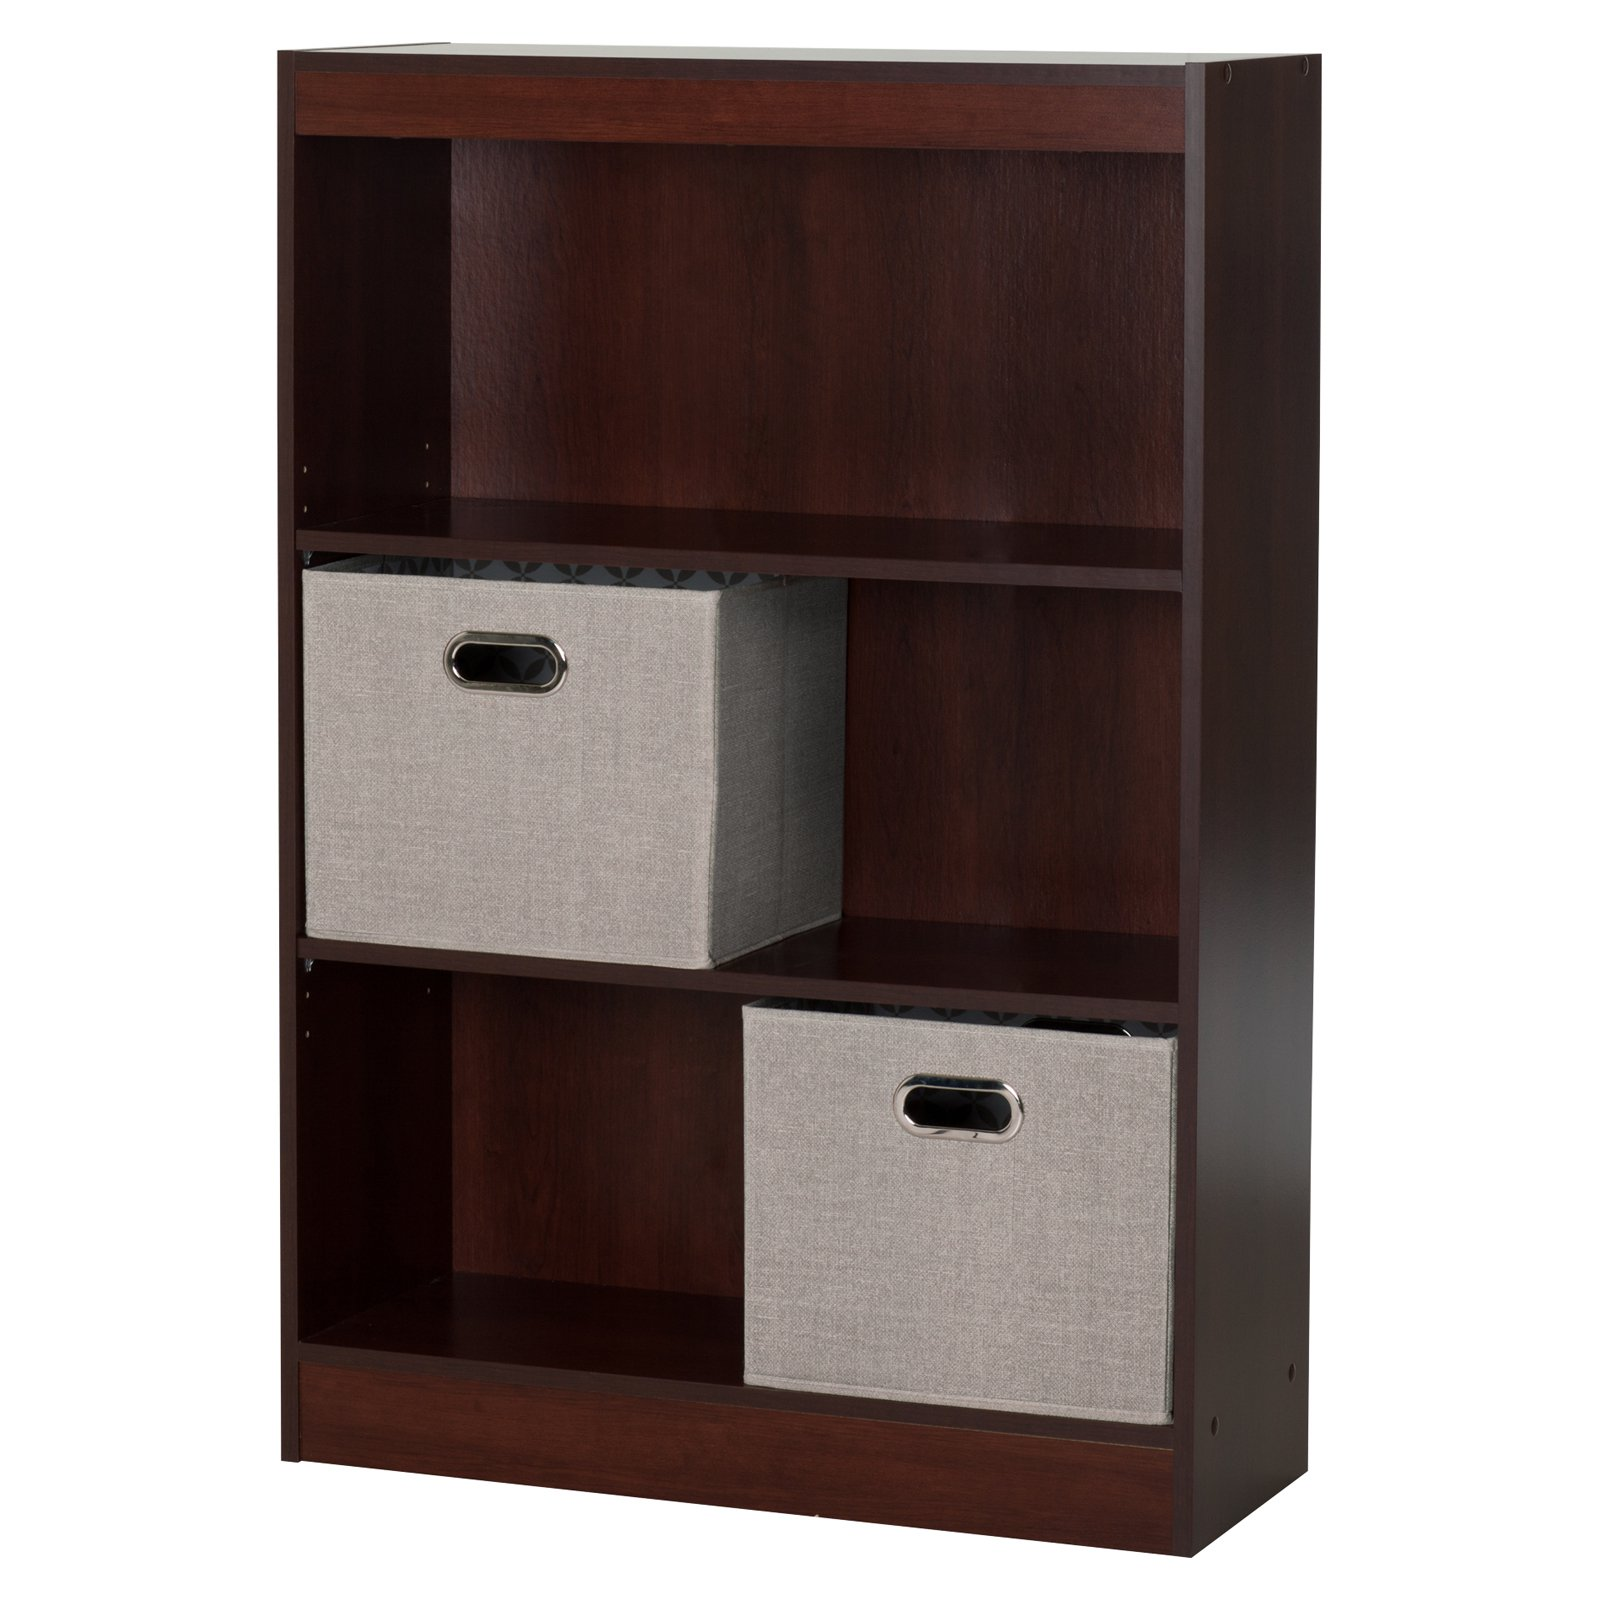 3 Shelf Bookcase with 2 Fabric Storage Baskets by South Shore